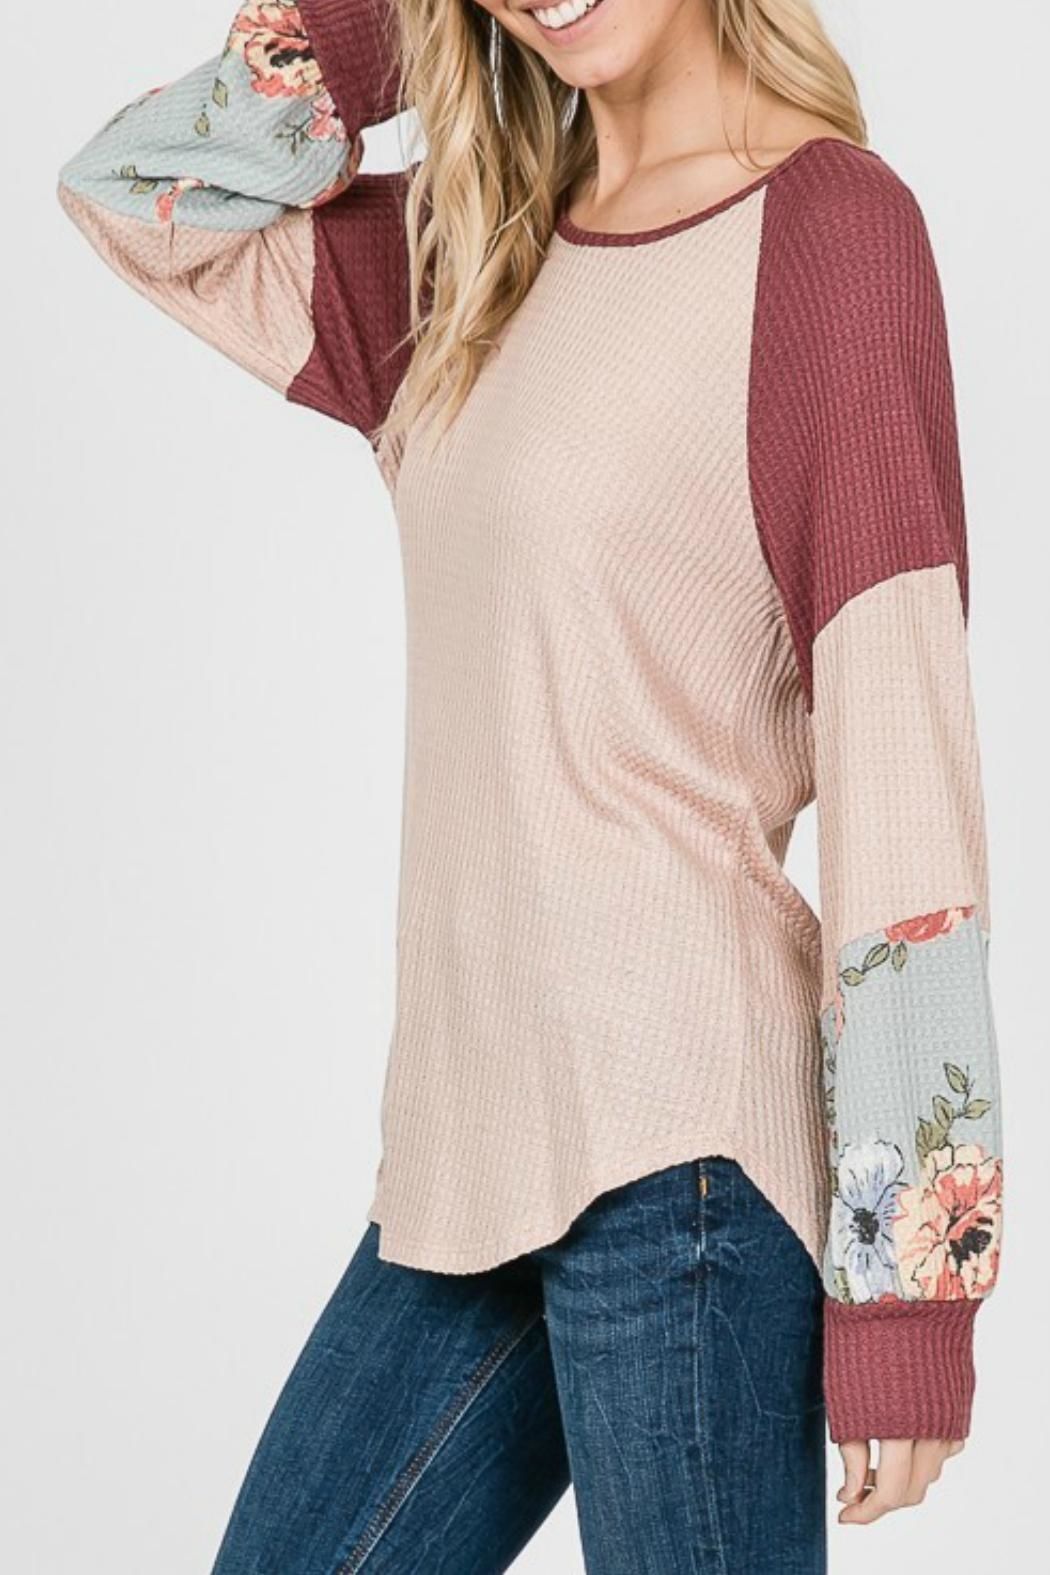 7th Ray Floral Sleeve Pullover - Front Full Image